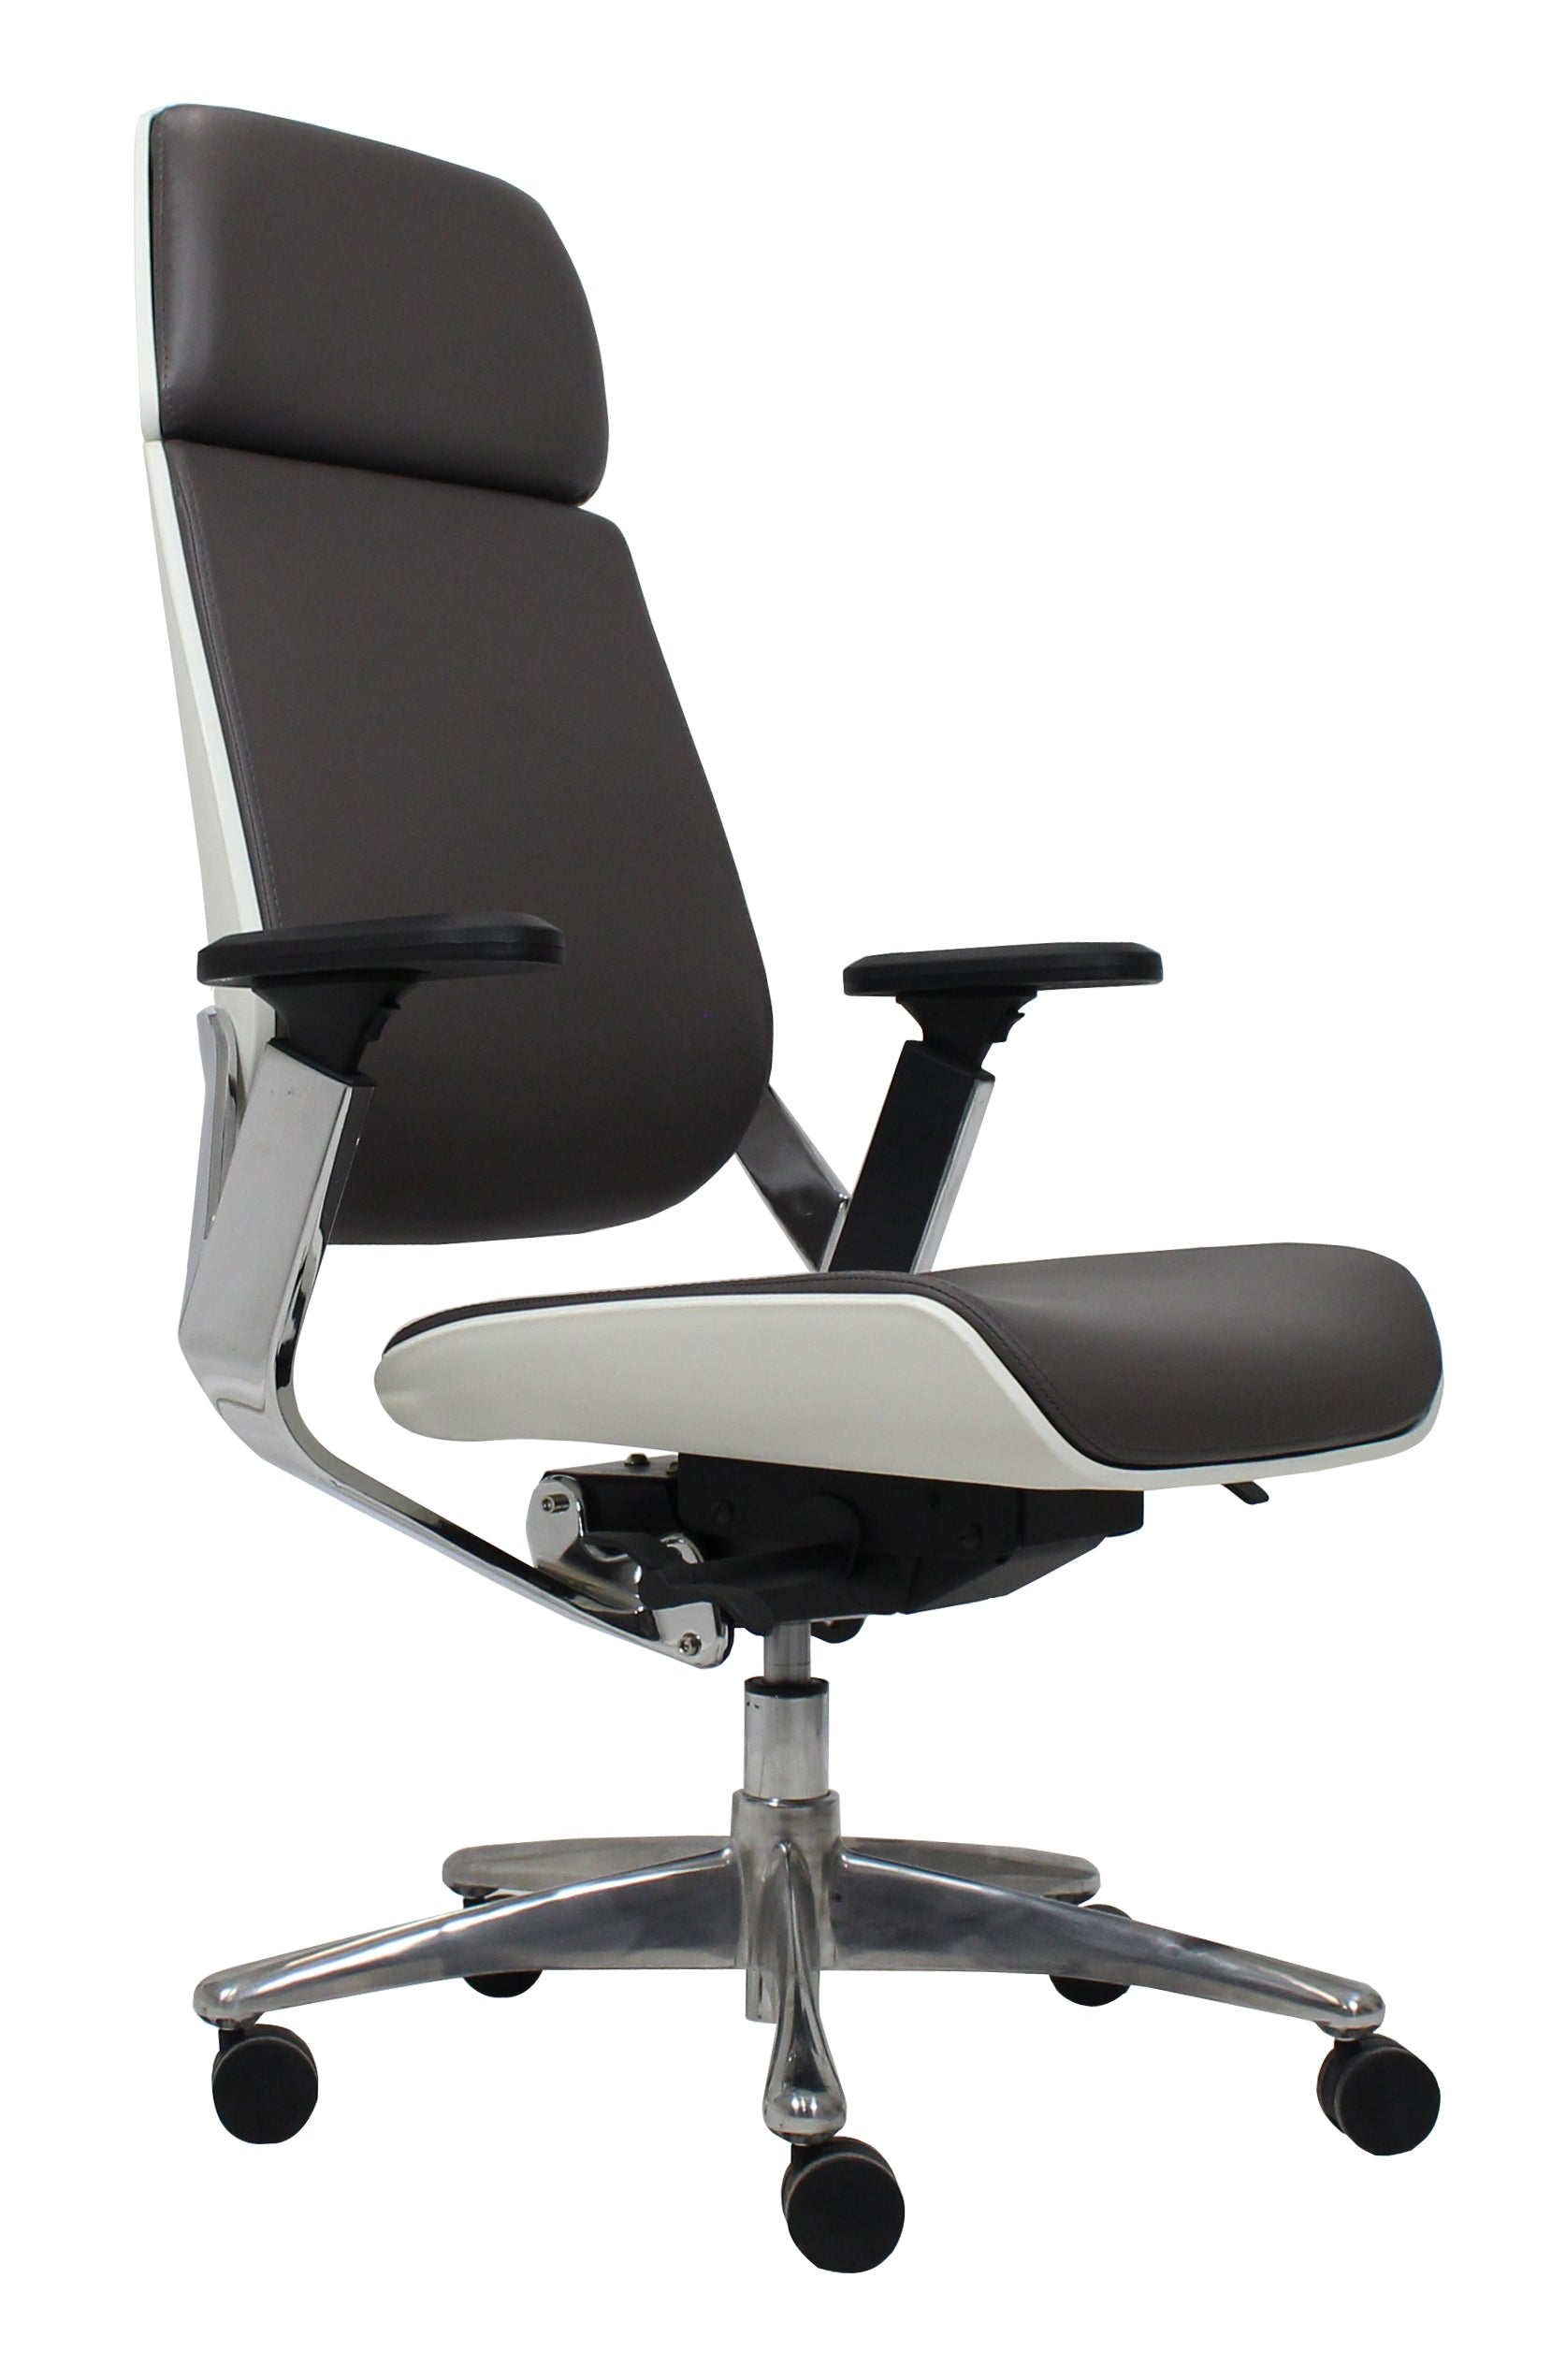 Silla Ejecutiva Boss - offimobile